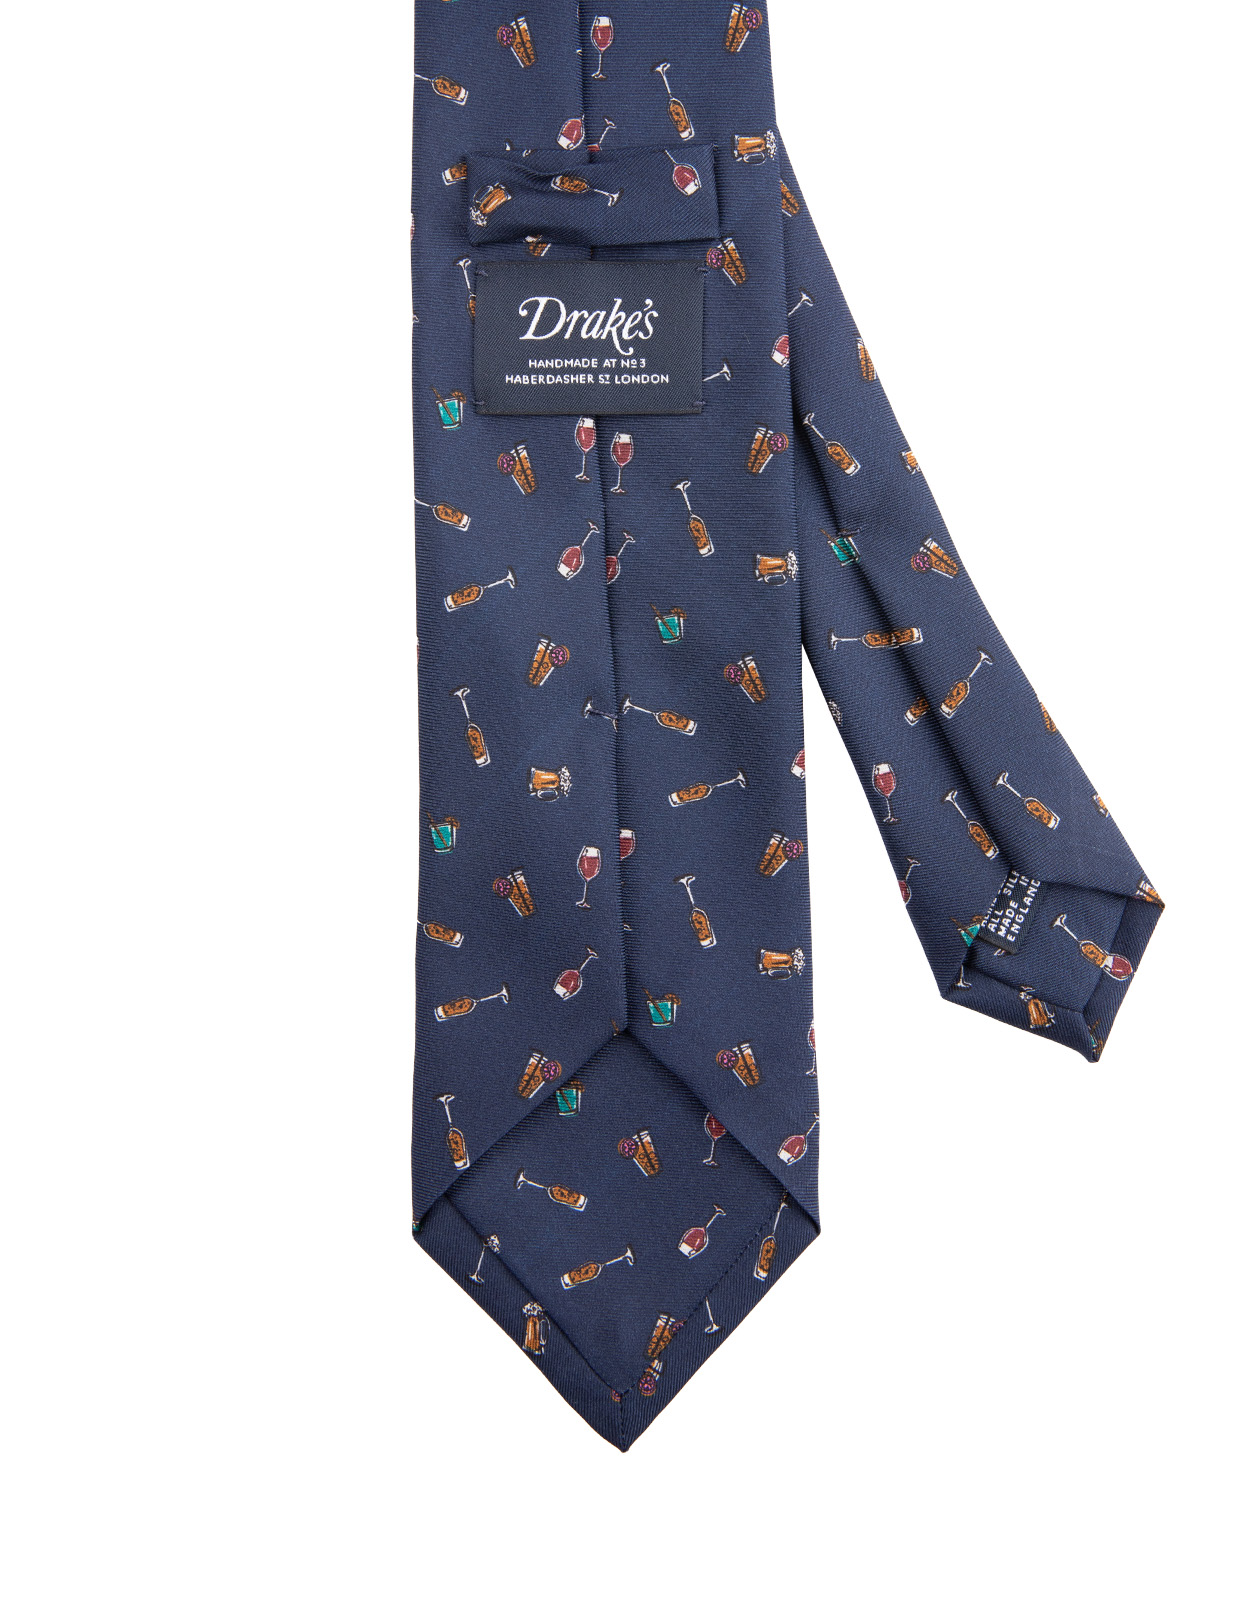 Drinks Patterned Handmade Silk Tie Navy